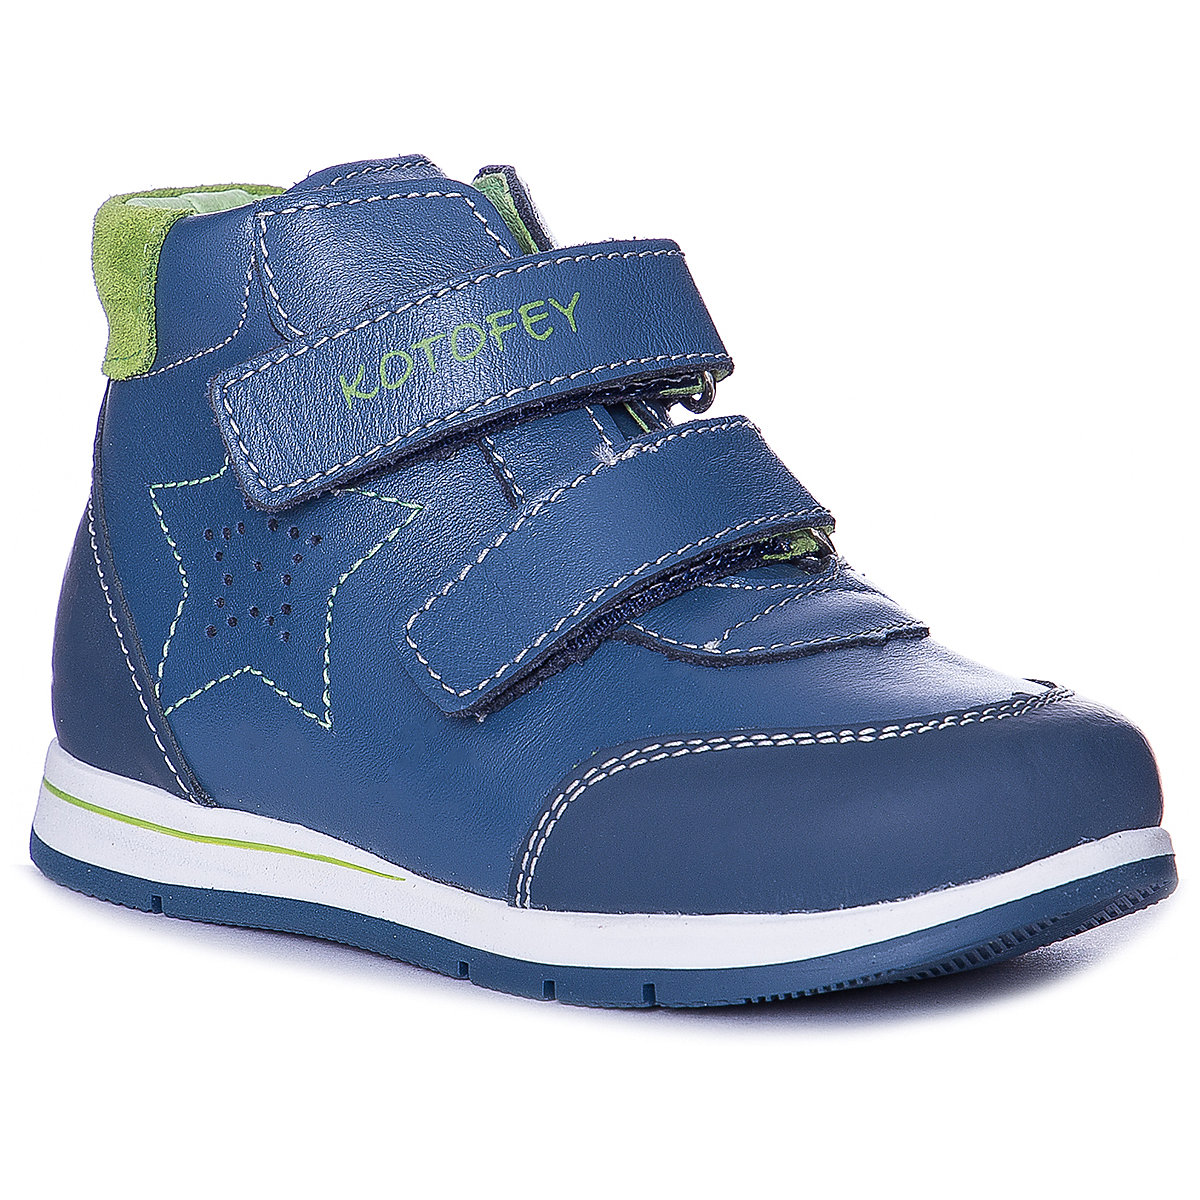 Boots KOTOFEY 10813947 Baby Shoes Footwear Of Boys And Girls For Kids